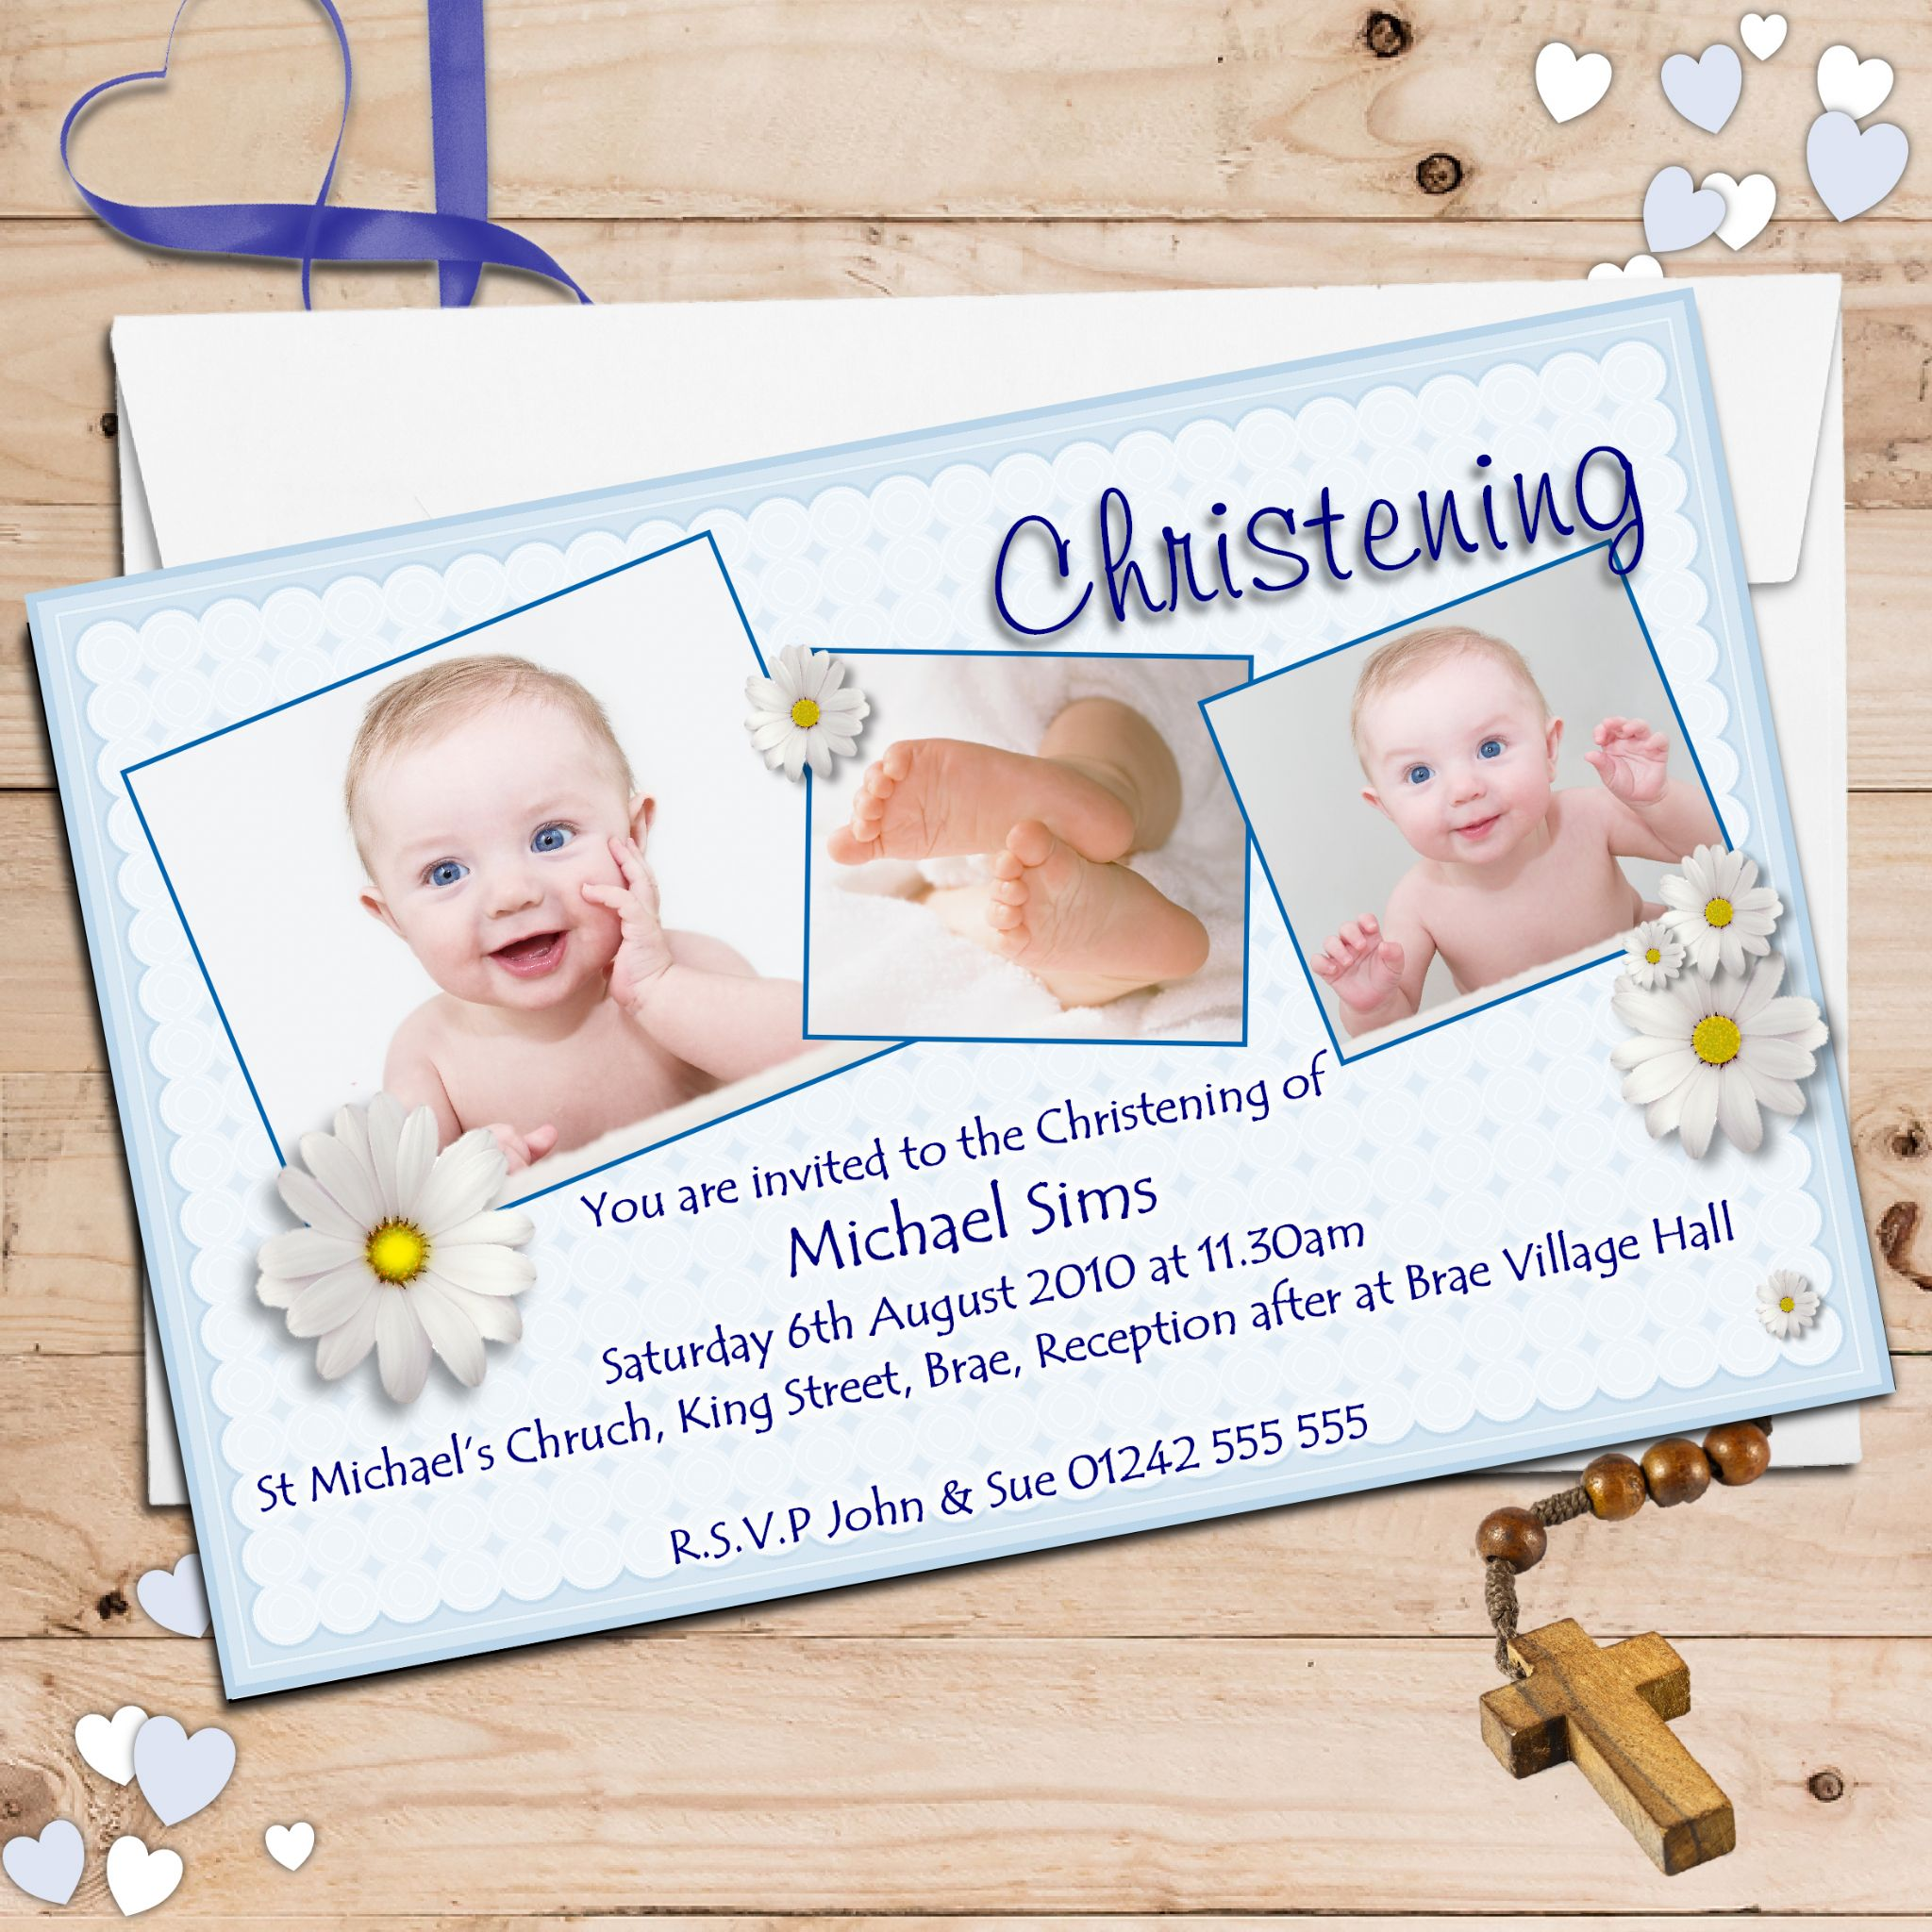 Personalised christening invitations personalised baptism cards 10 personalised boys daisy christening baptism invitations photo invites n49 stopboris Choice Image